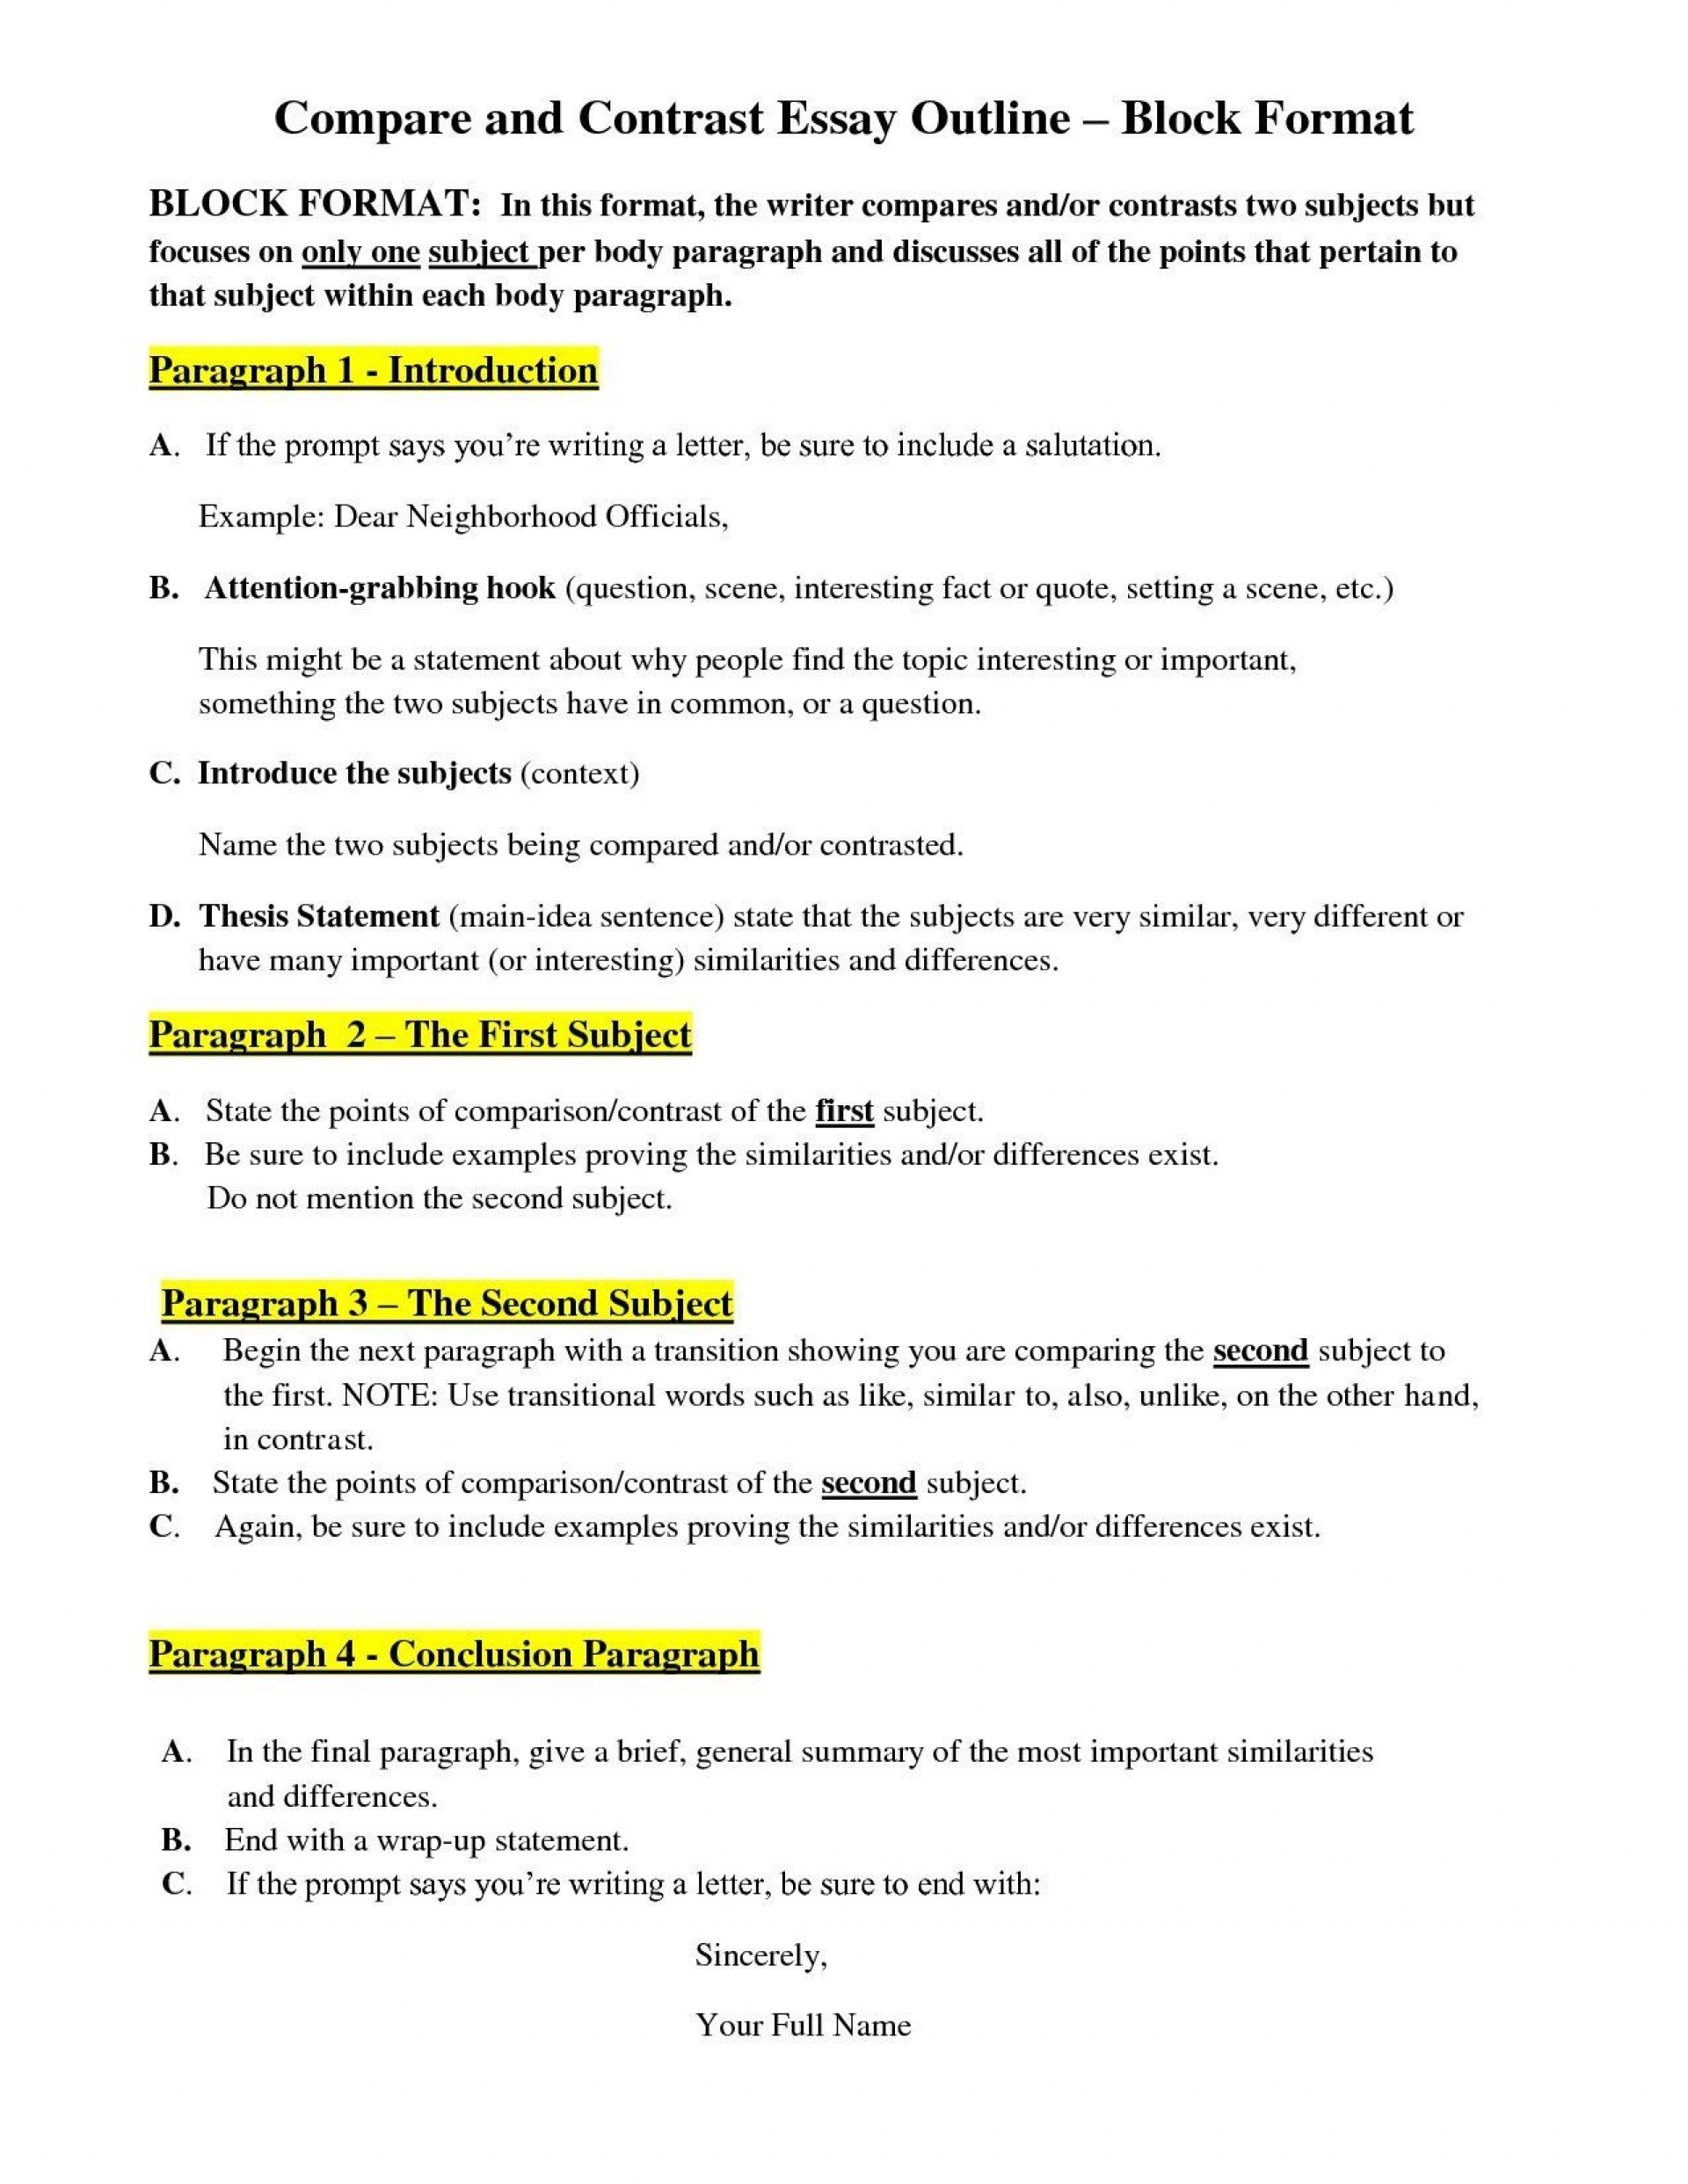 007 Compare And Contrast Essay Frightening Topics For College Students Rubric 4th Grade Ideas 7th 1920